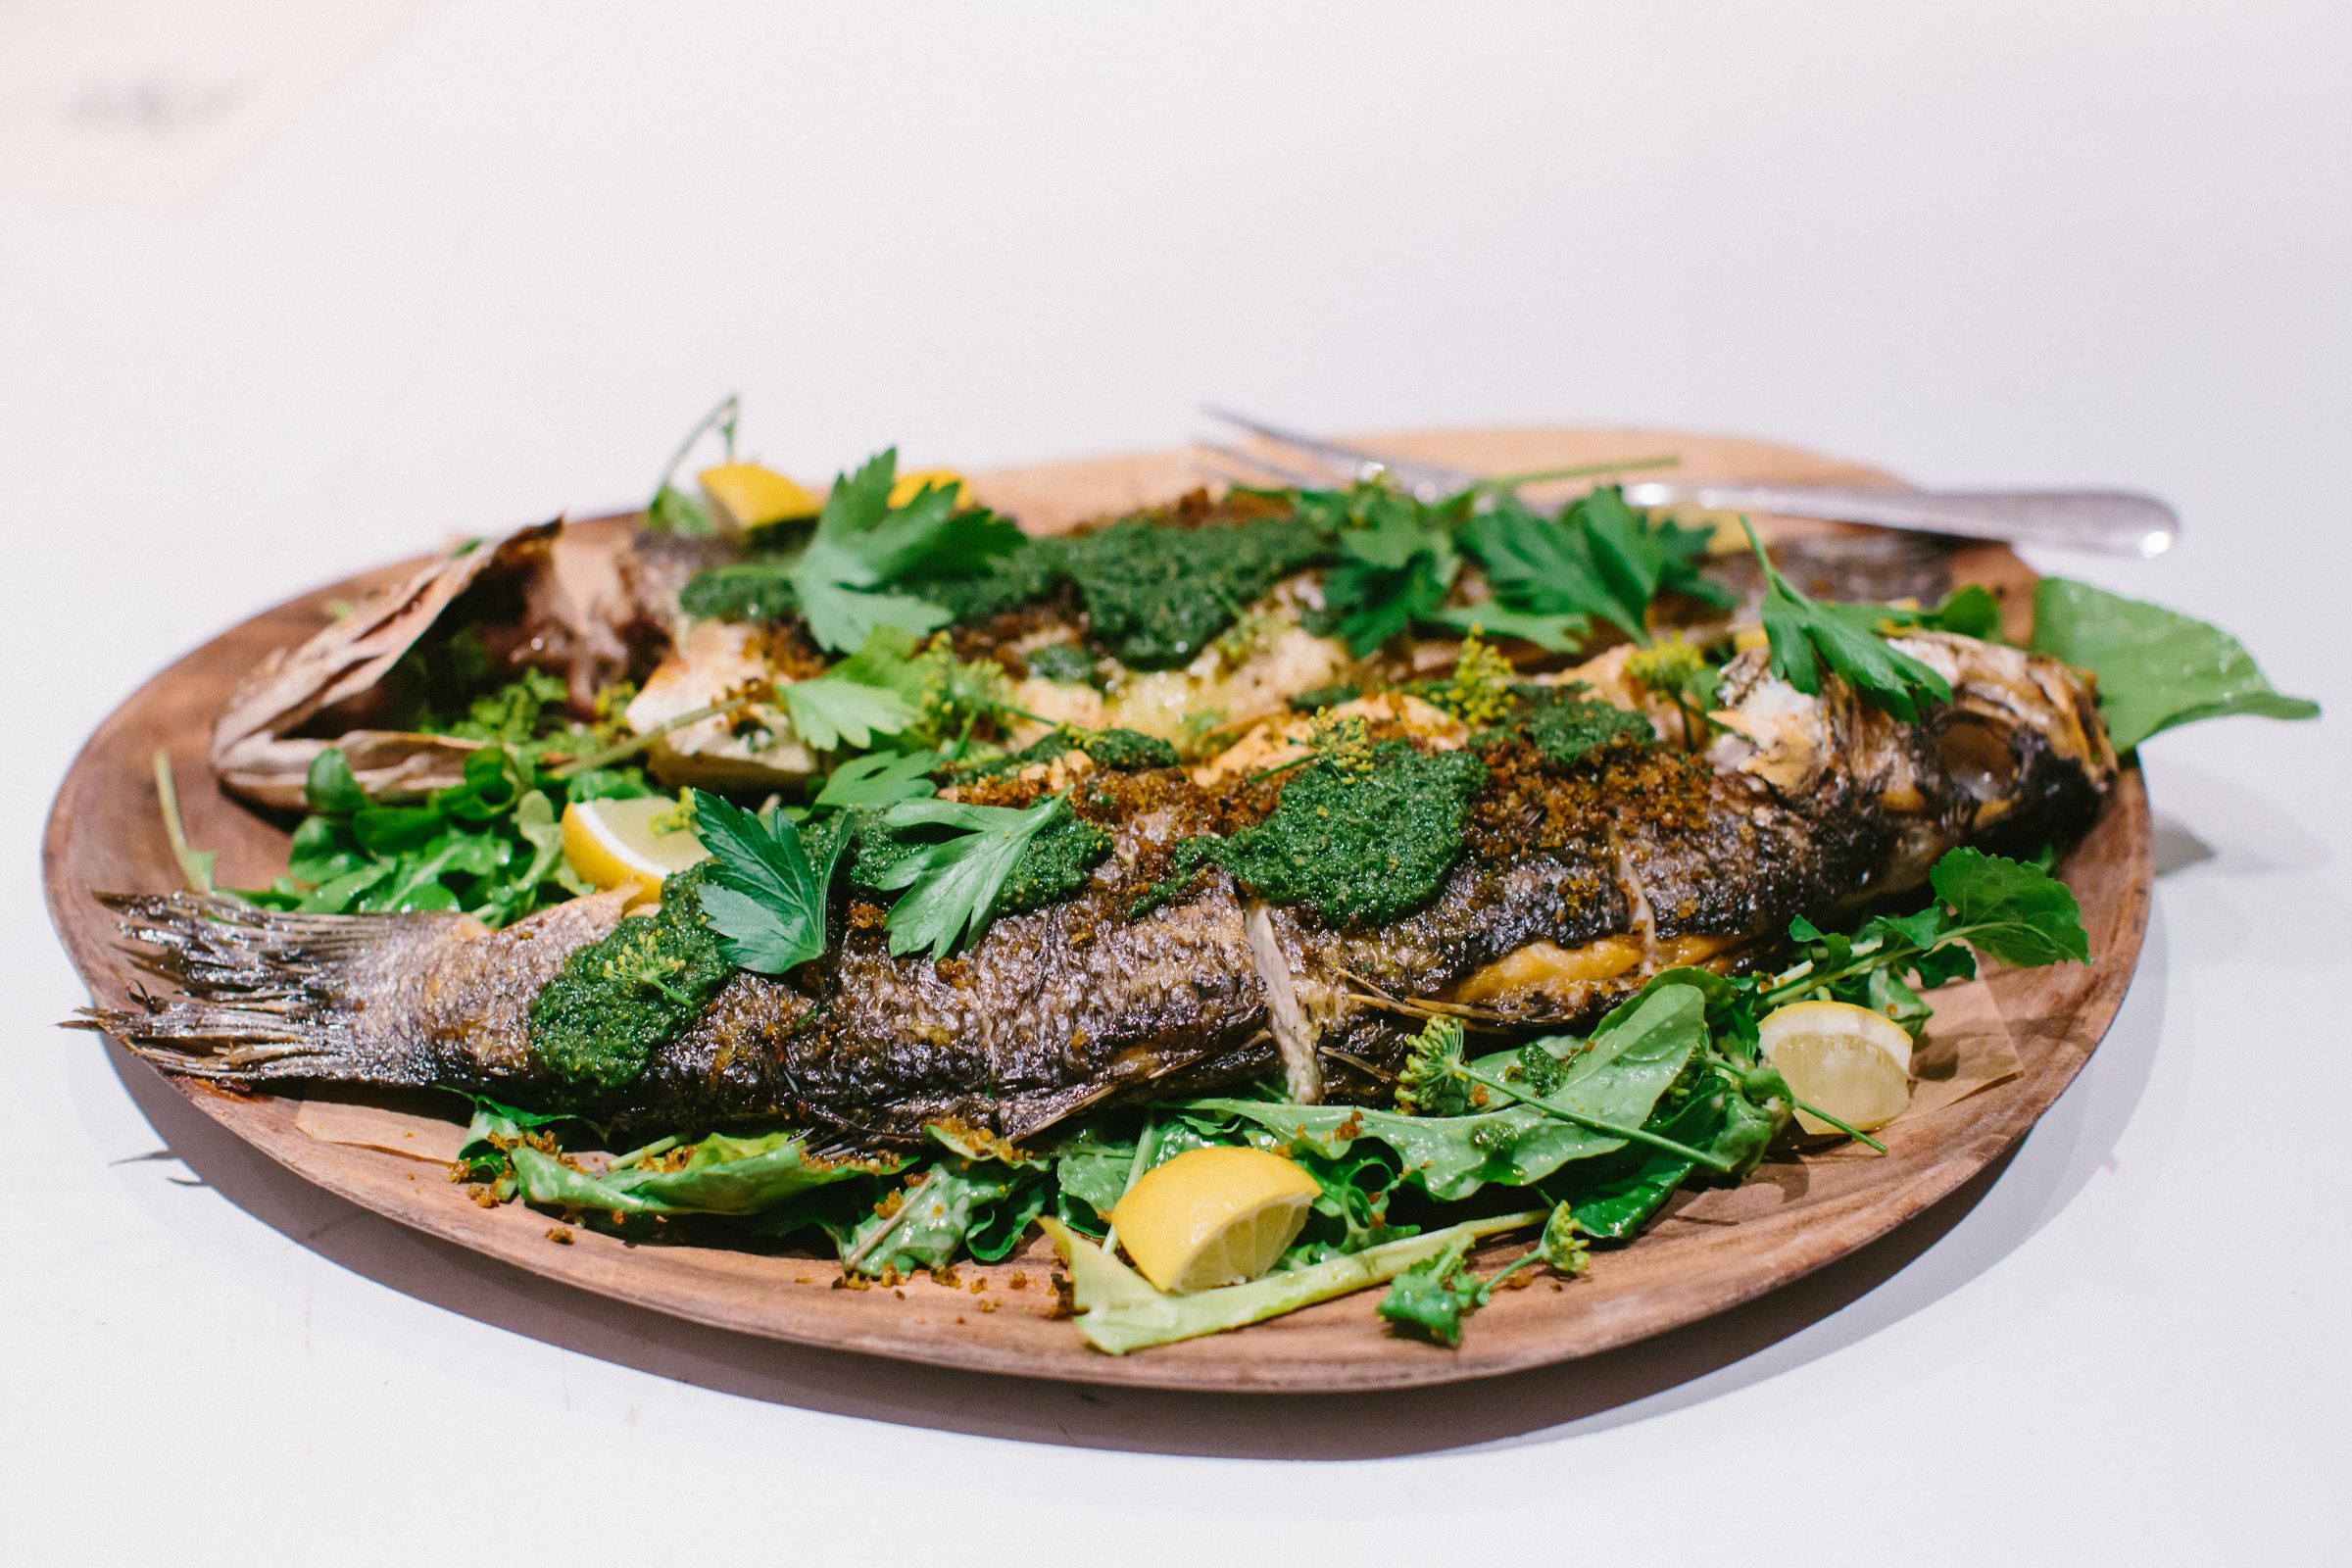 crusted whole fish with herbs on a bamboo plate wedding meal photo- photo by Amy and Stuart Photography, Los Angeles